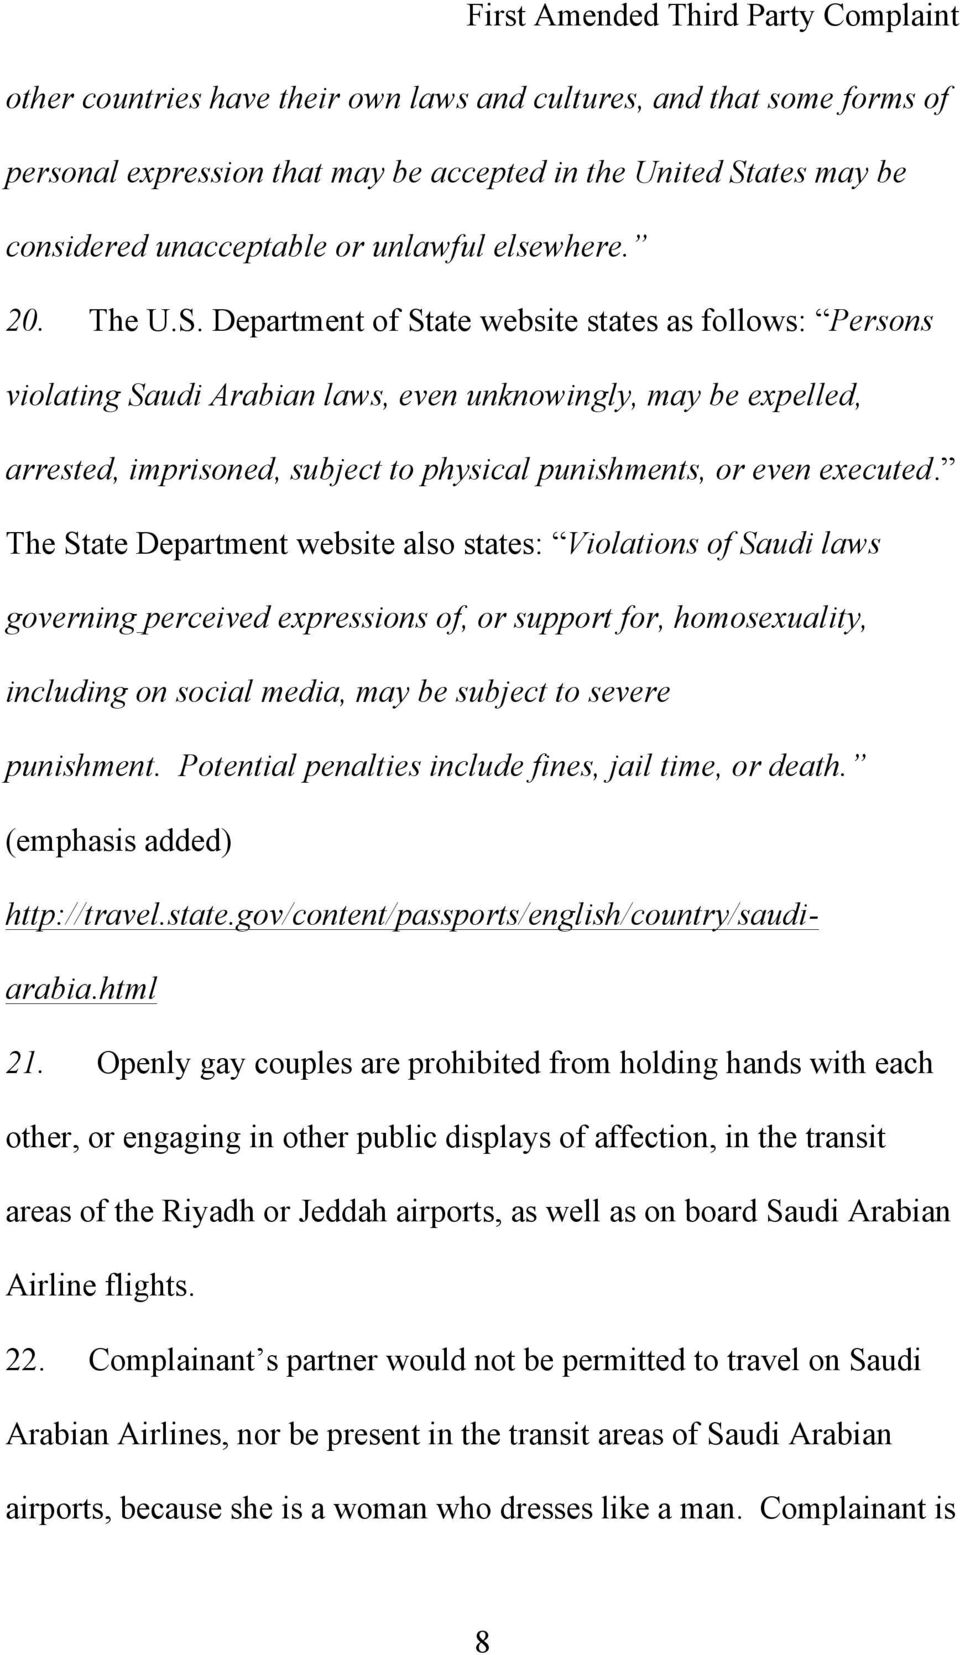 The State Department website also states: Violations of Saudi laws governing perceived expressions of, or support for, homosexuality, including on social media, may be subject to severe punishment.